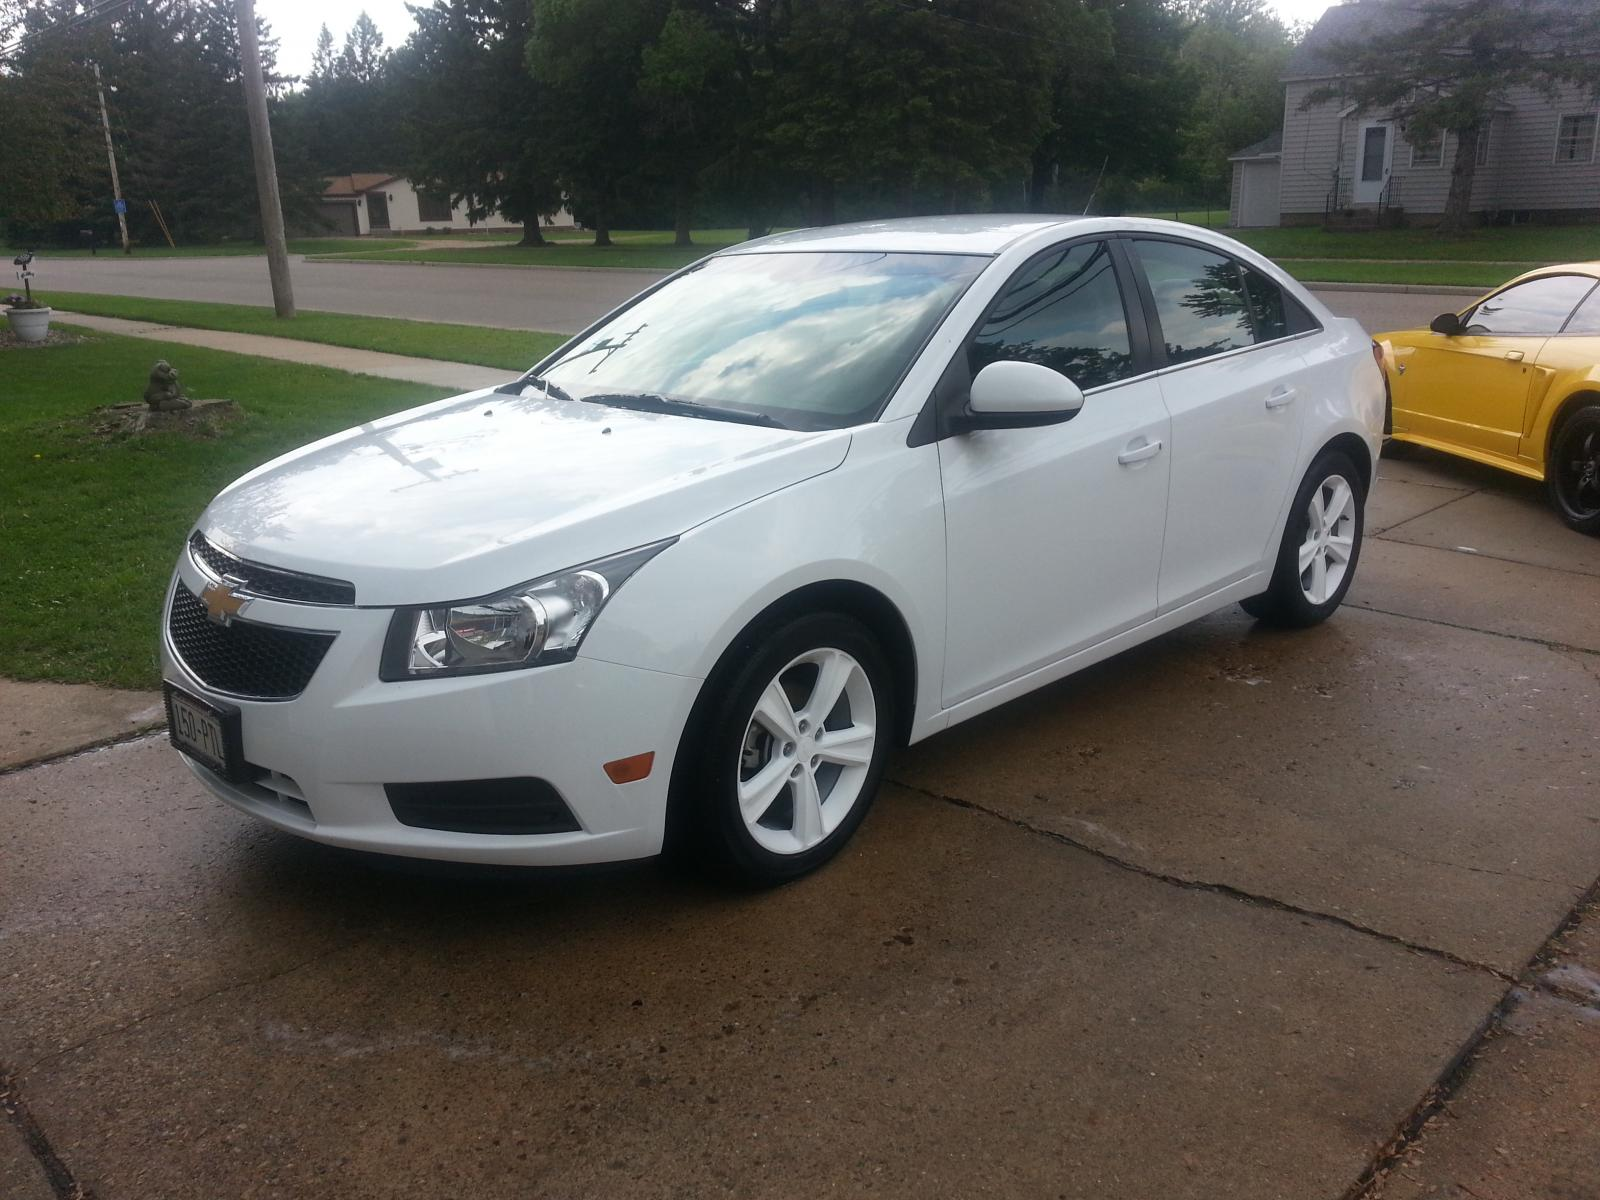 Chevy Cruze 14 Turbo Plasti Dip Rims??? - Page 2 - Chevy Impala Forums